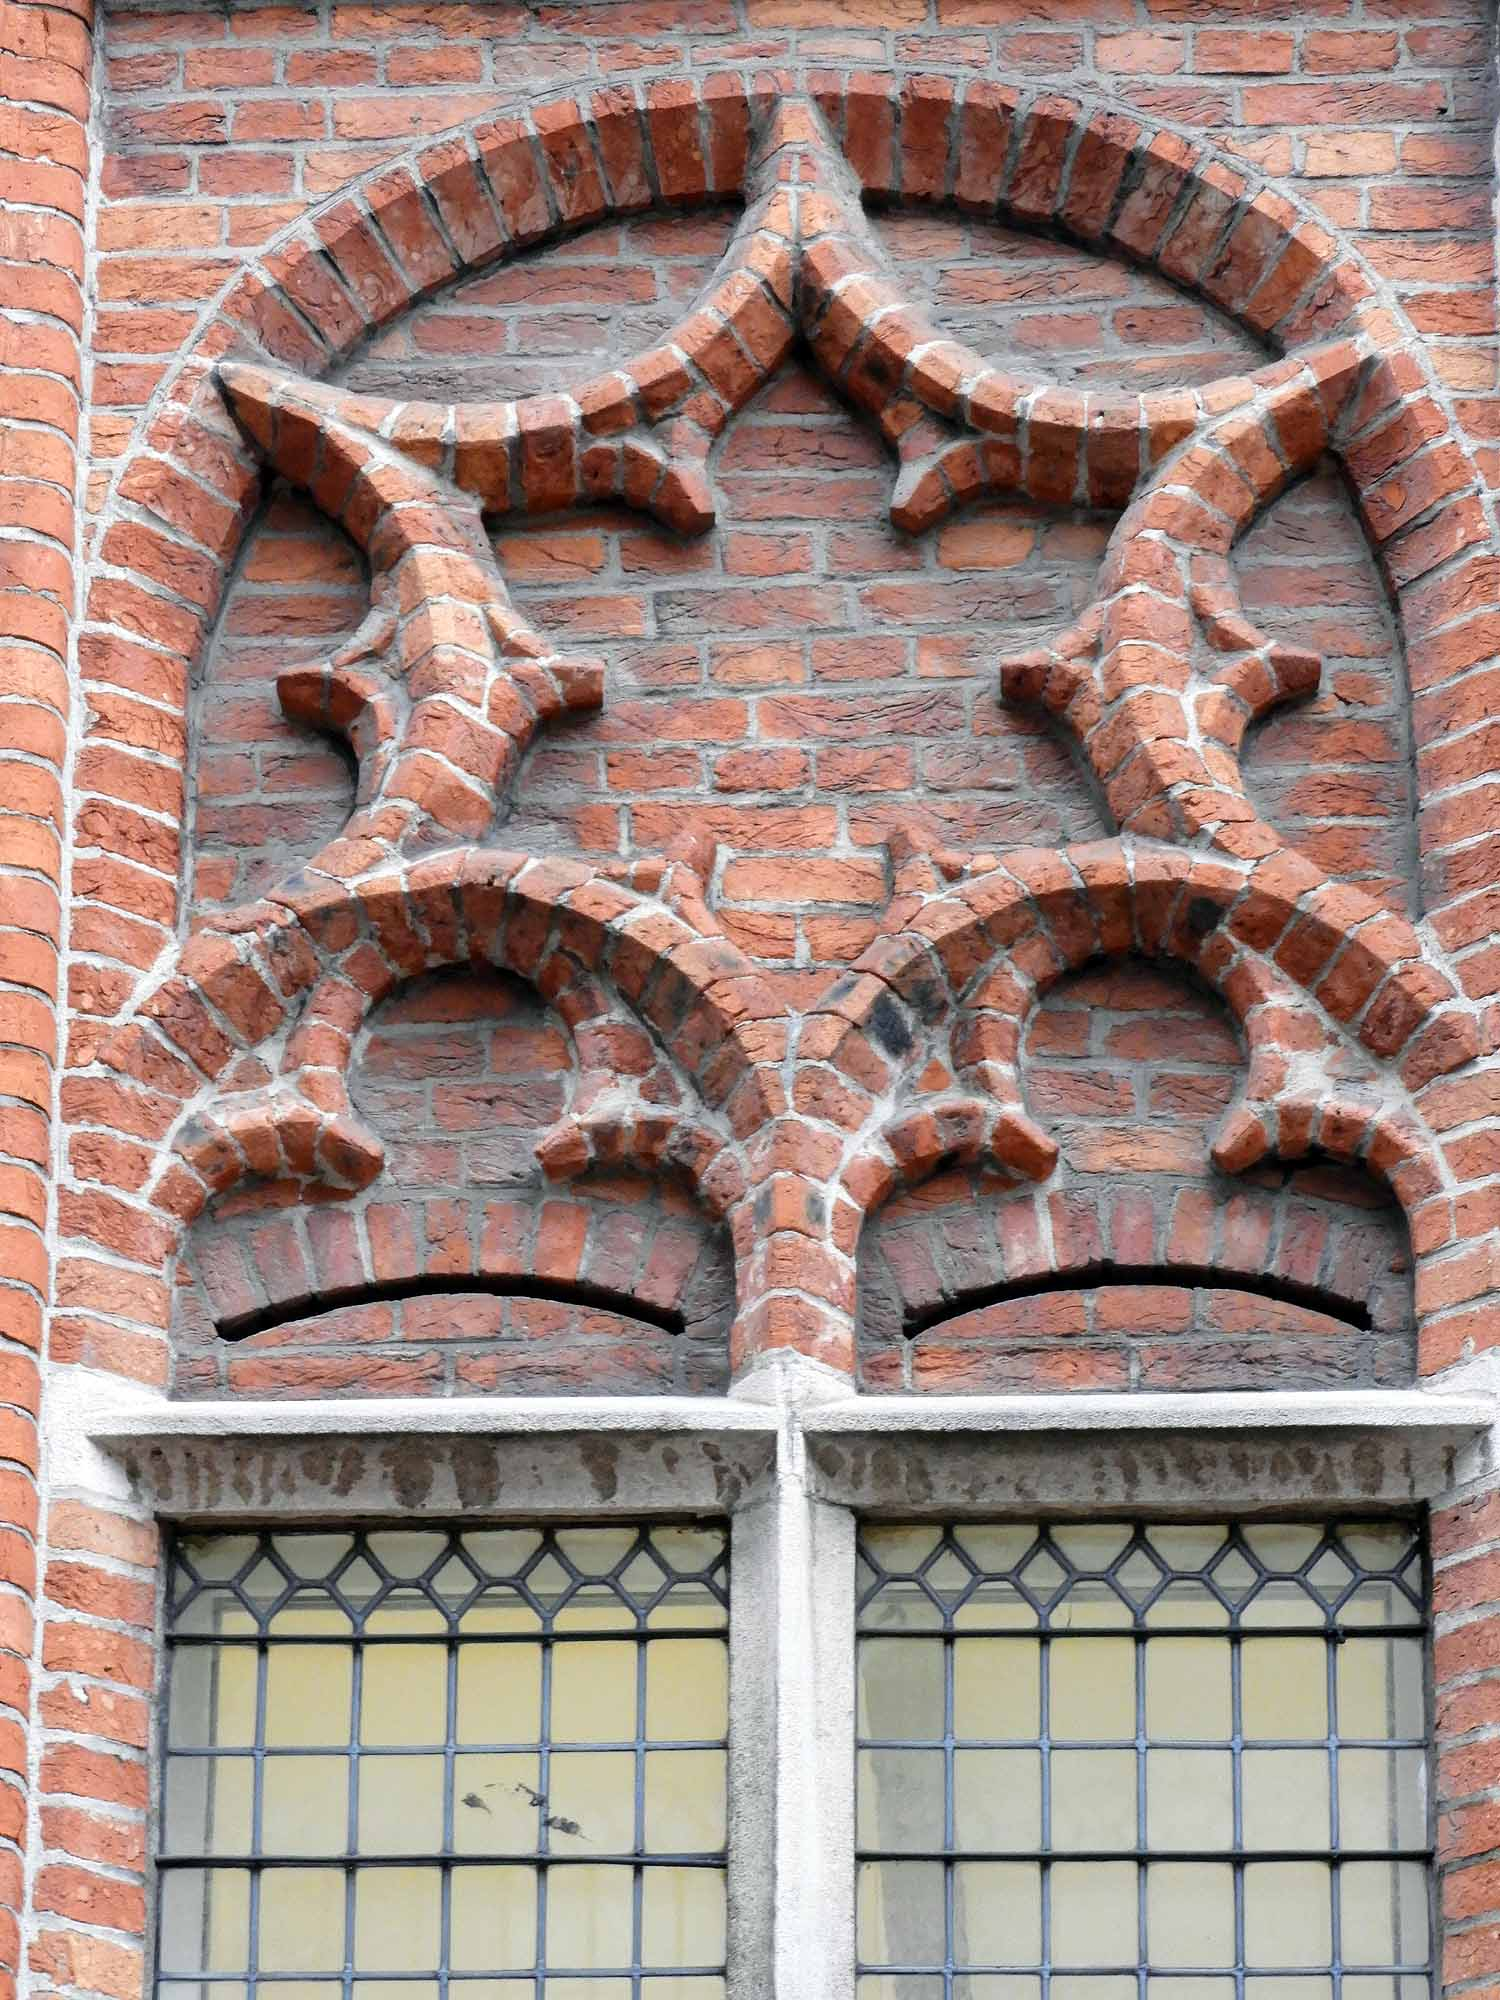 belgium-bruges-window-fancy-brickwork-design.jpg